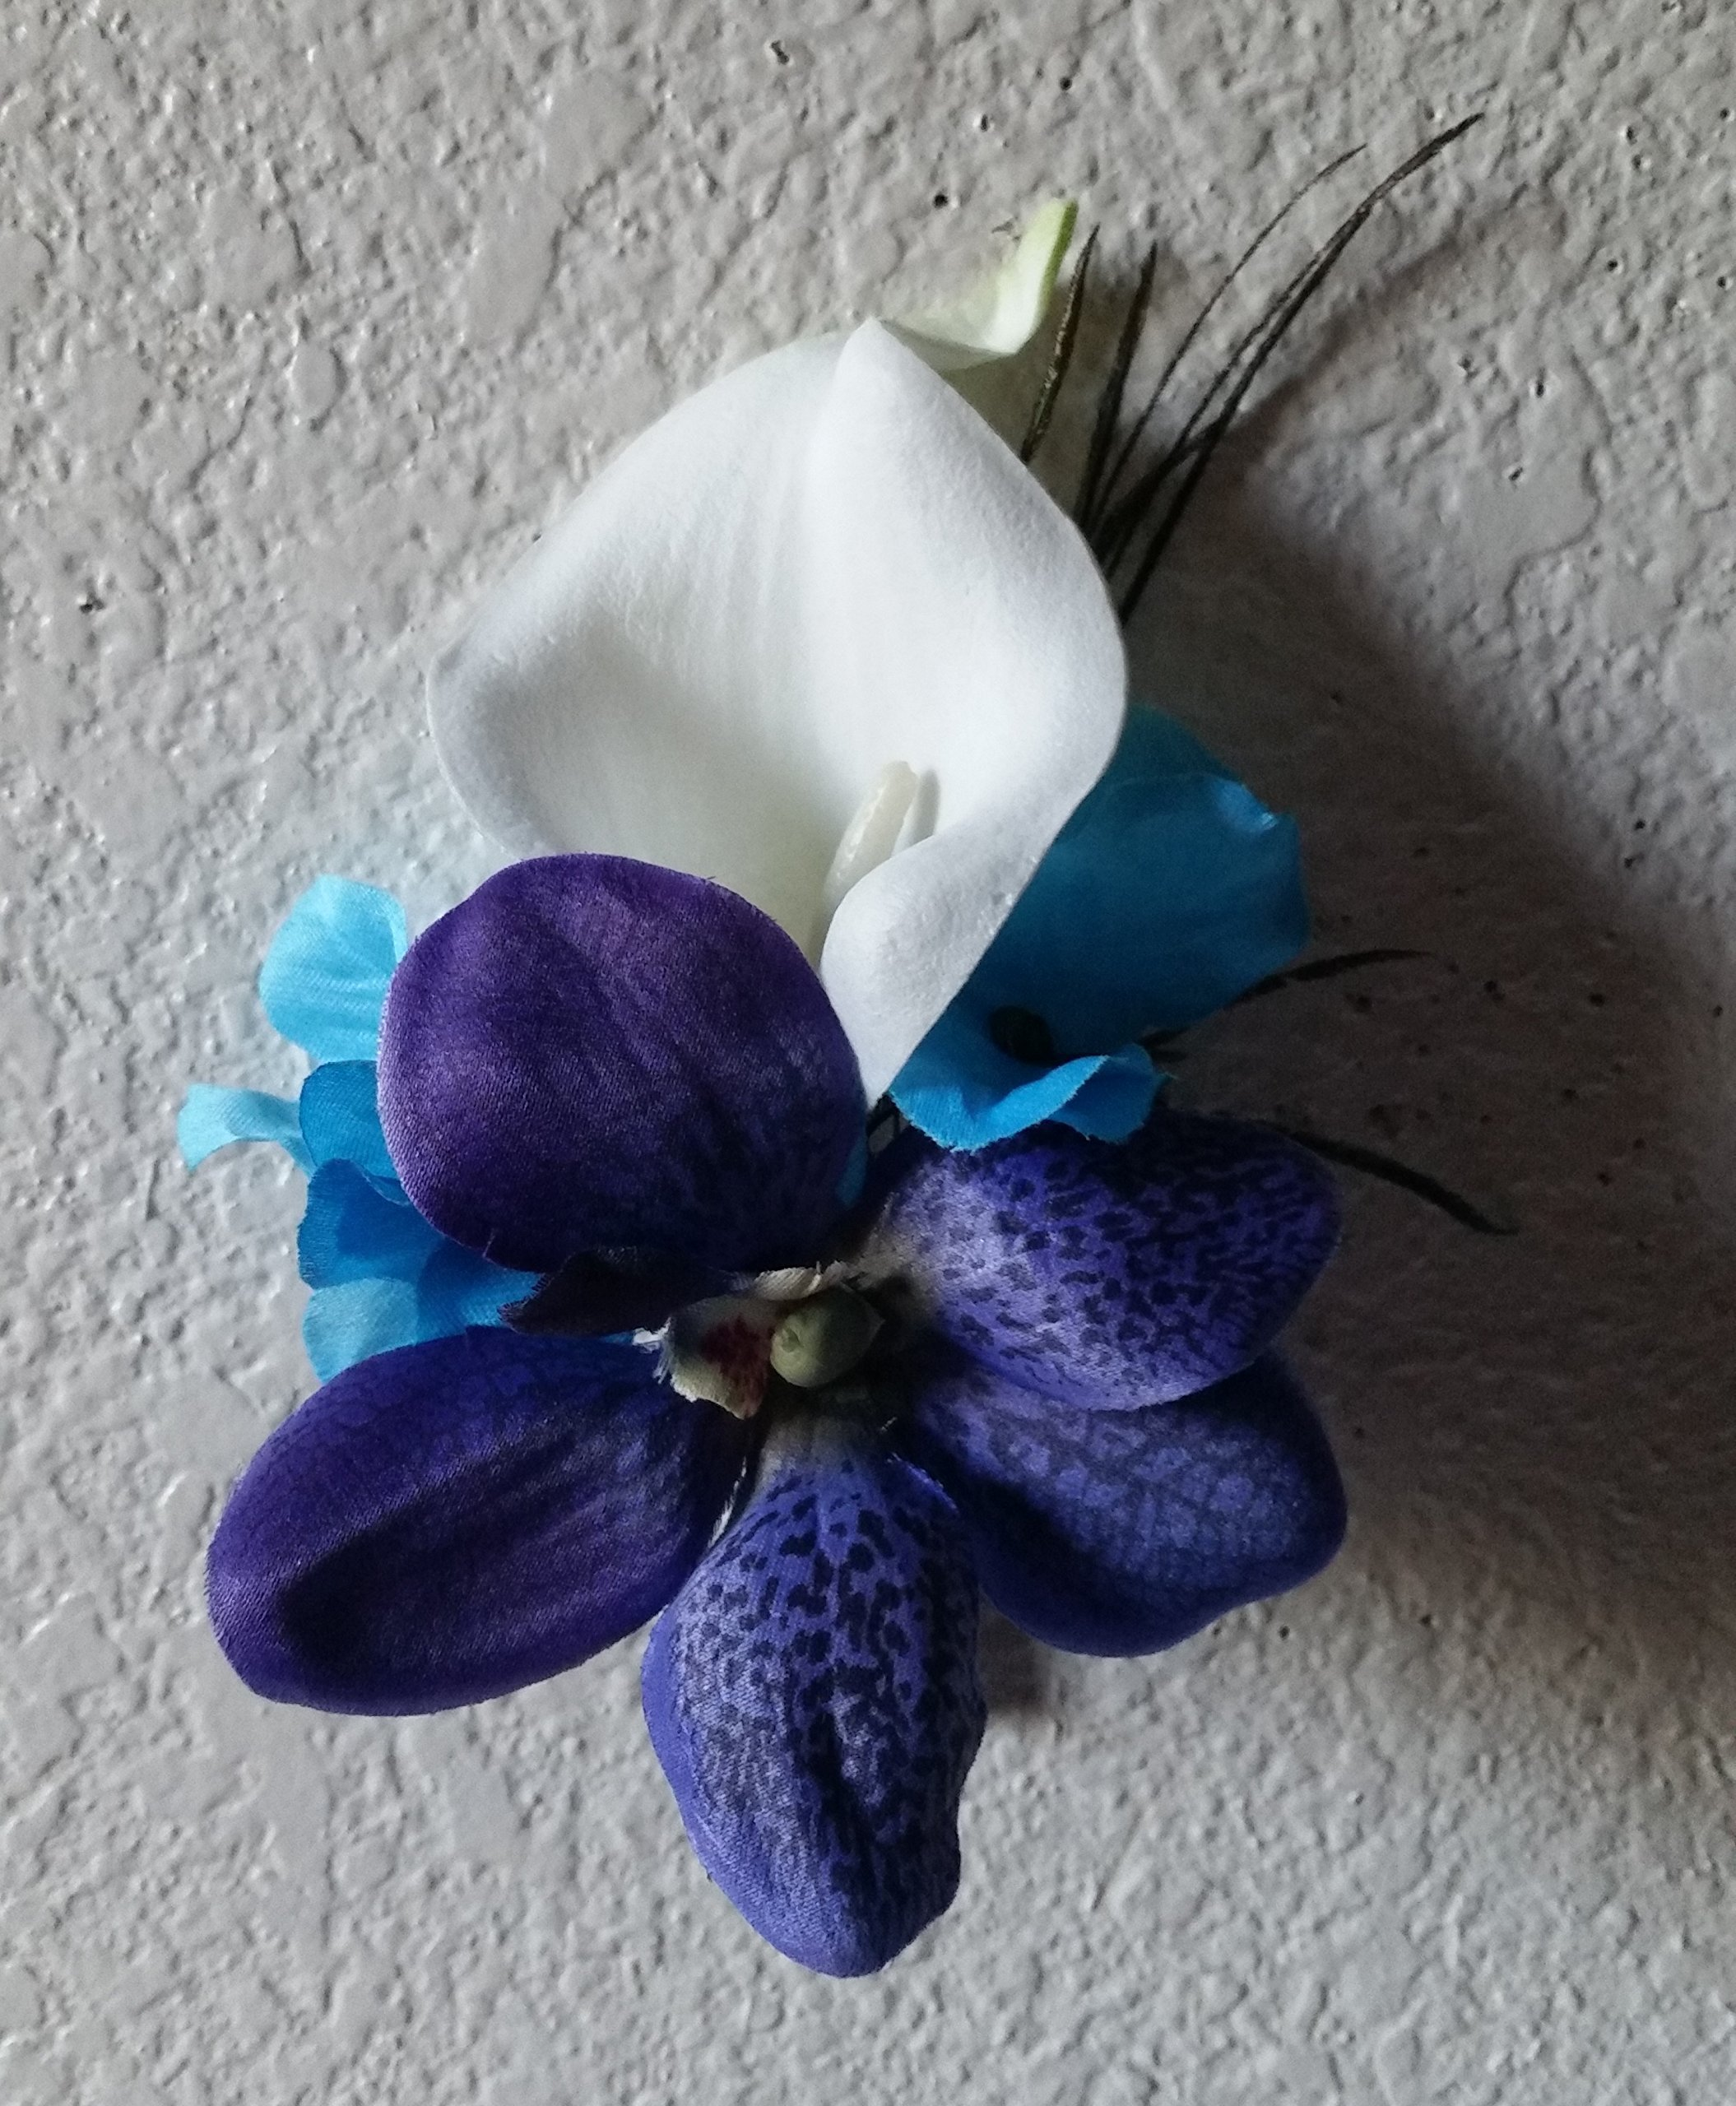 Purple-Blue-Turquoise-Orchid-Calla-Lily-Bridal-Wedding-Bouquet-Boutonniere